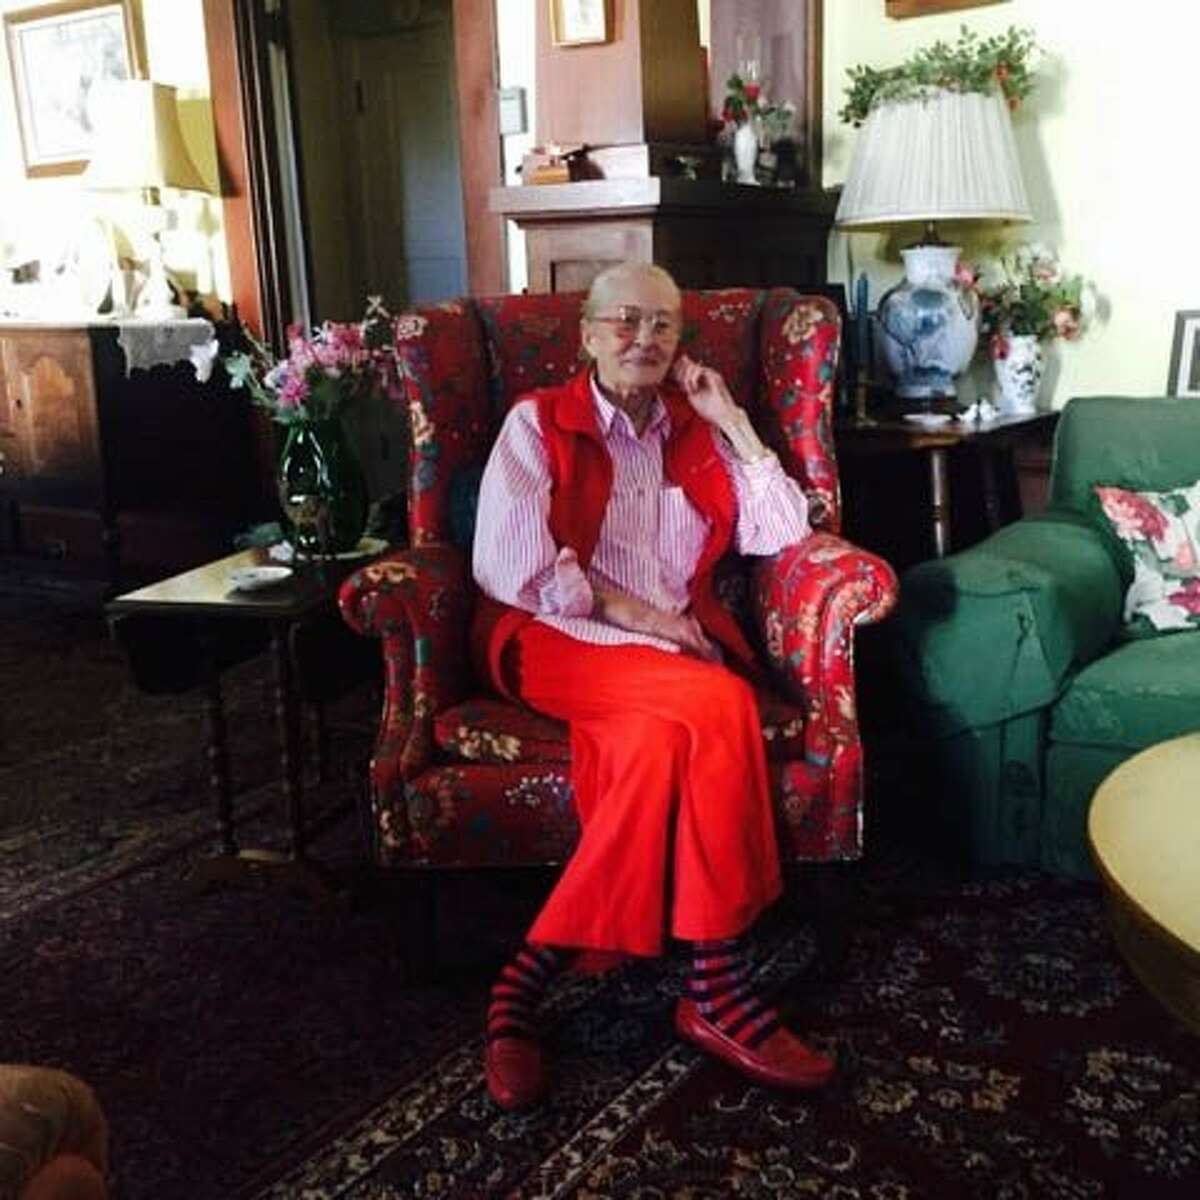 Marie Hatch has lived in her home for more than six decades. She's now being evicted.